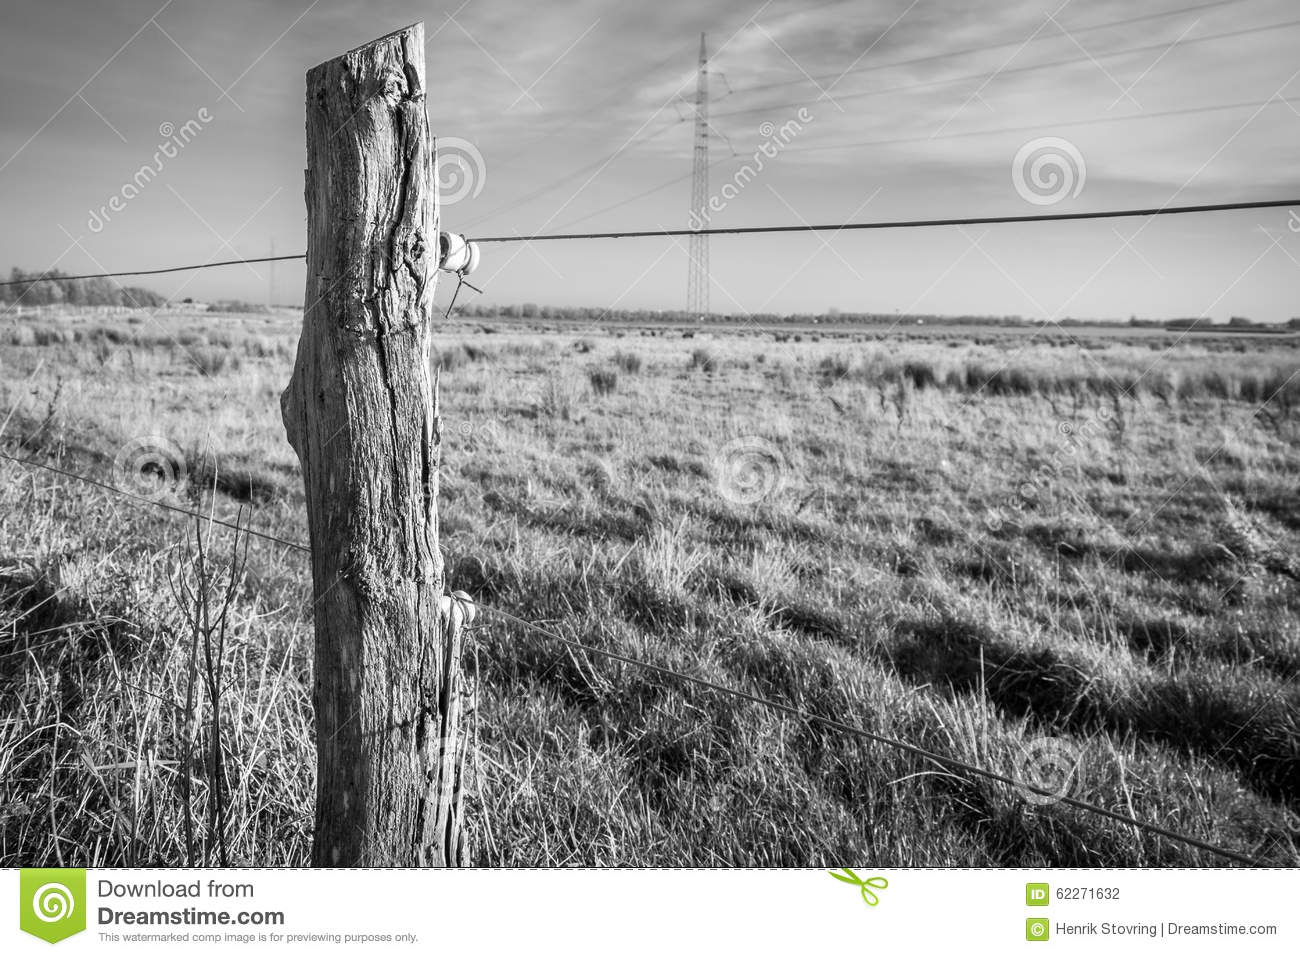 Old wire fence post stock photo. Image of over, danish - 62271632